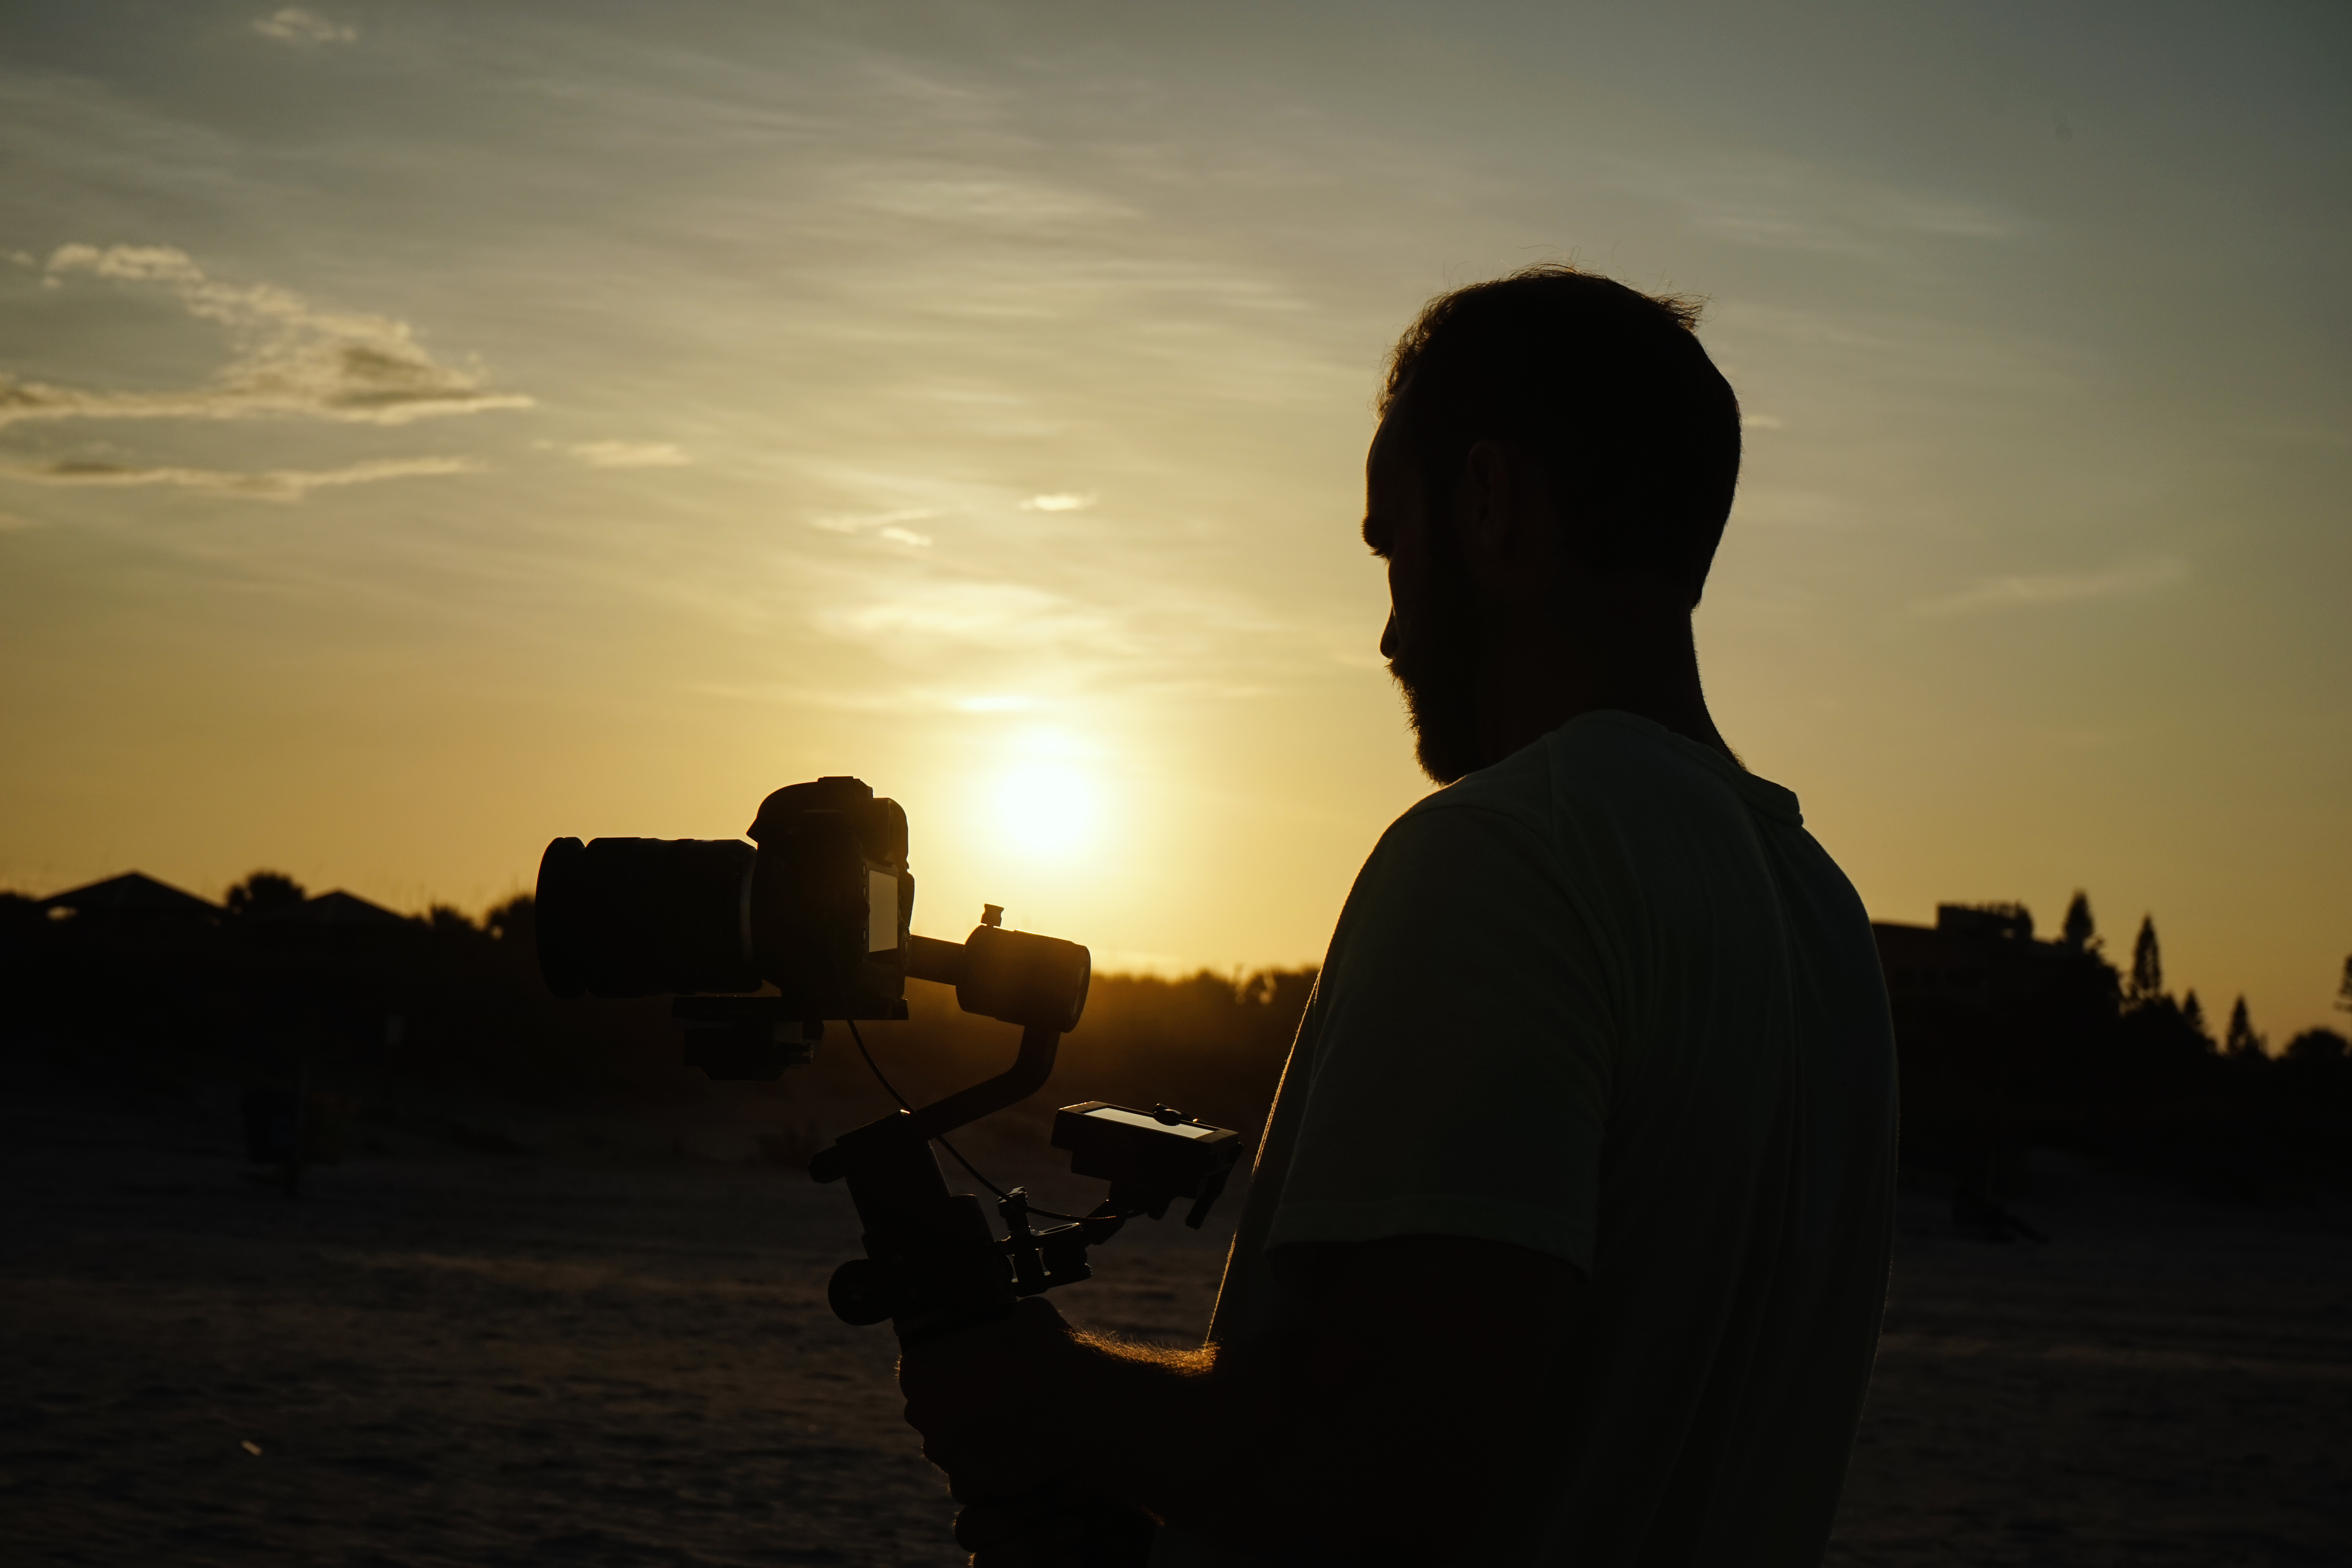 silhouette photo of man holding camera during golden hour